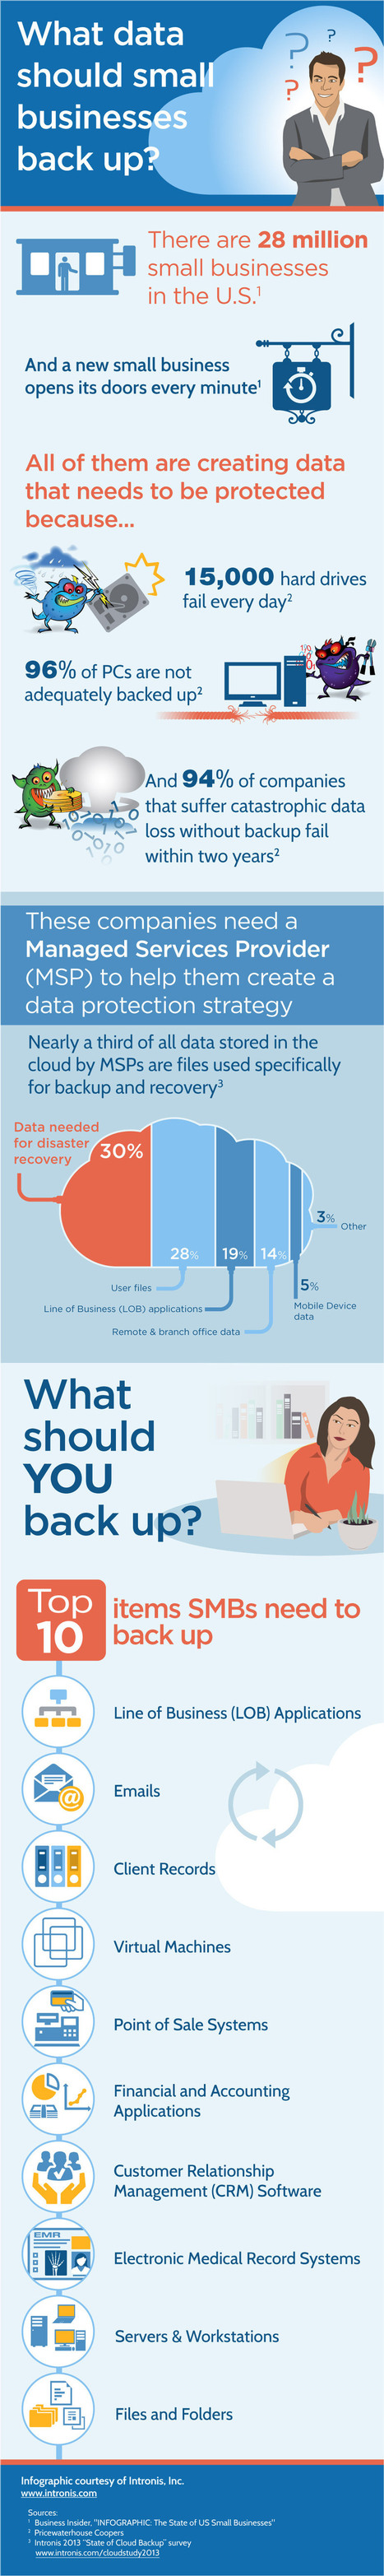 Cloud Infographic: Small Business Data Backup - CloudTweaks.com: Cloud Information | Digital-News on Scoop.it today | Scoop.it